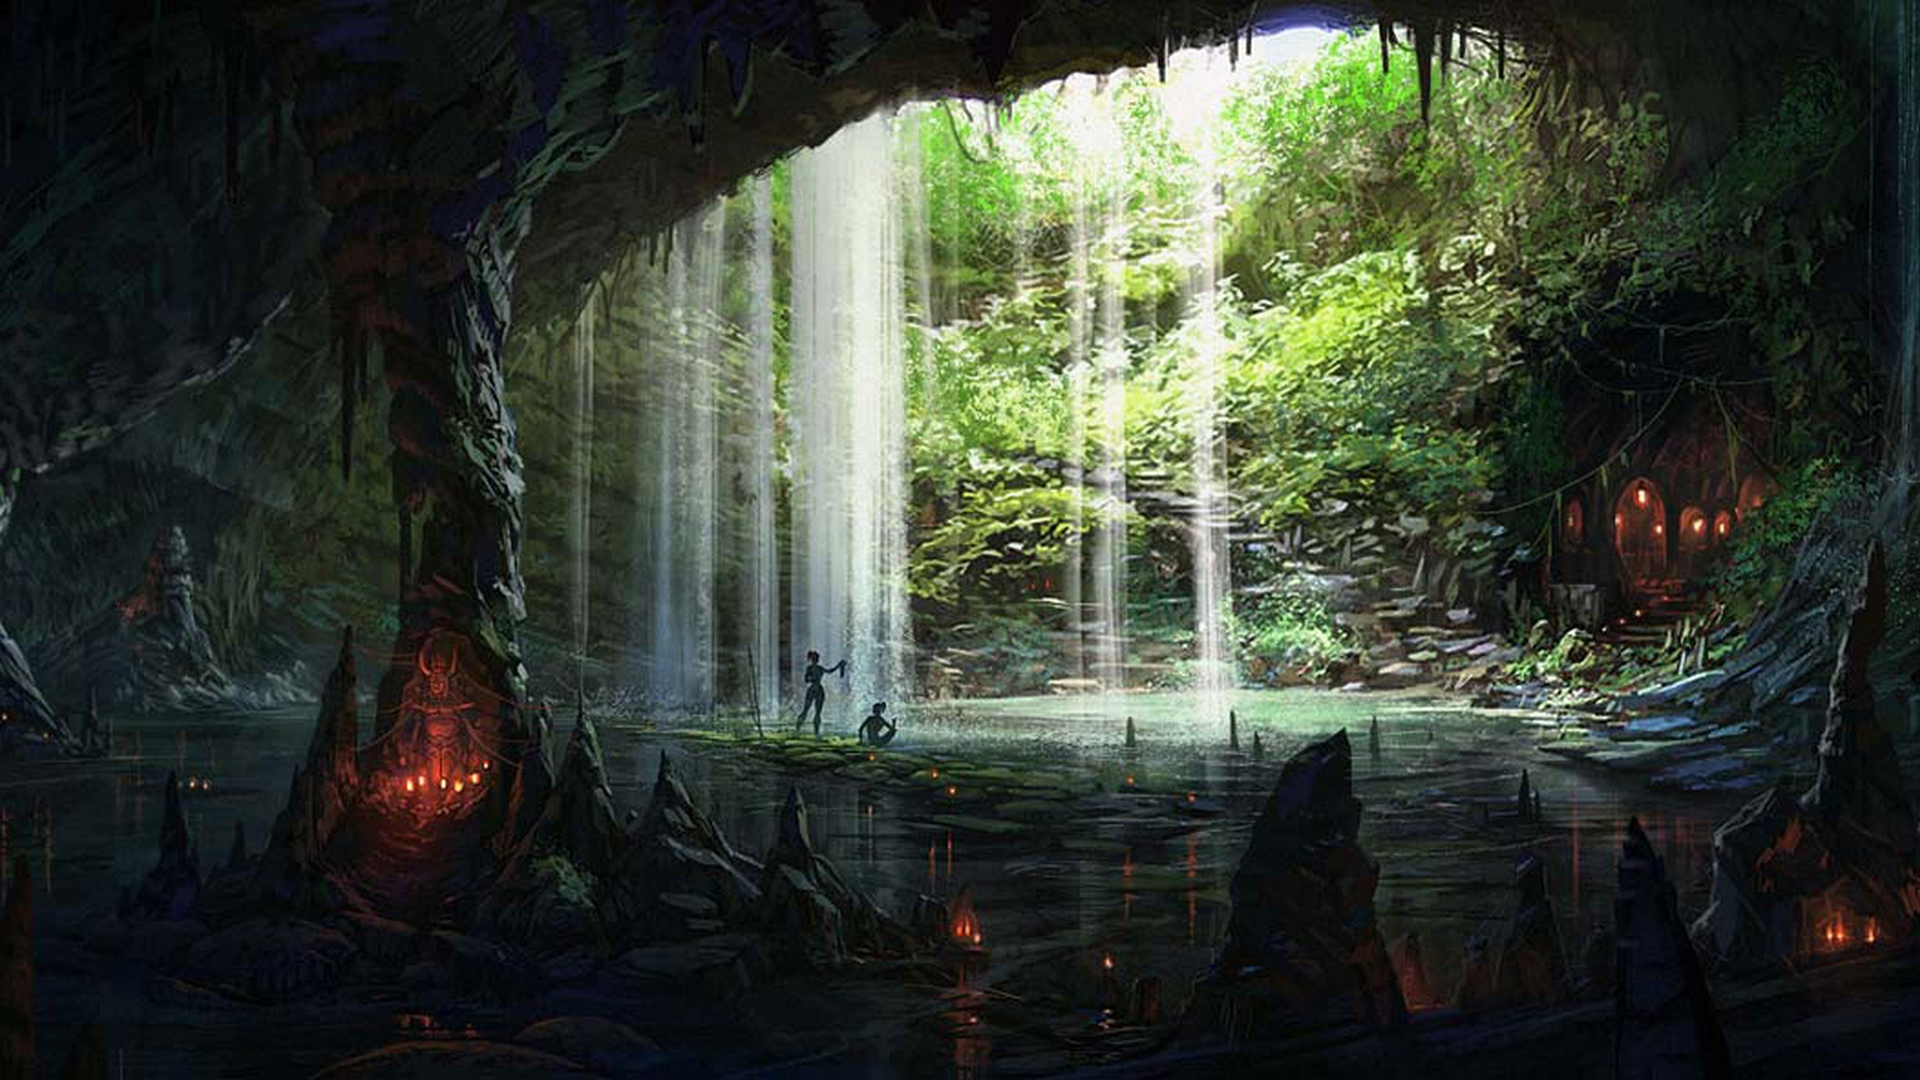 Amazing Cave Wallpaper